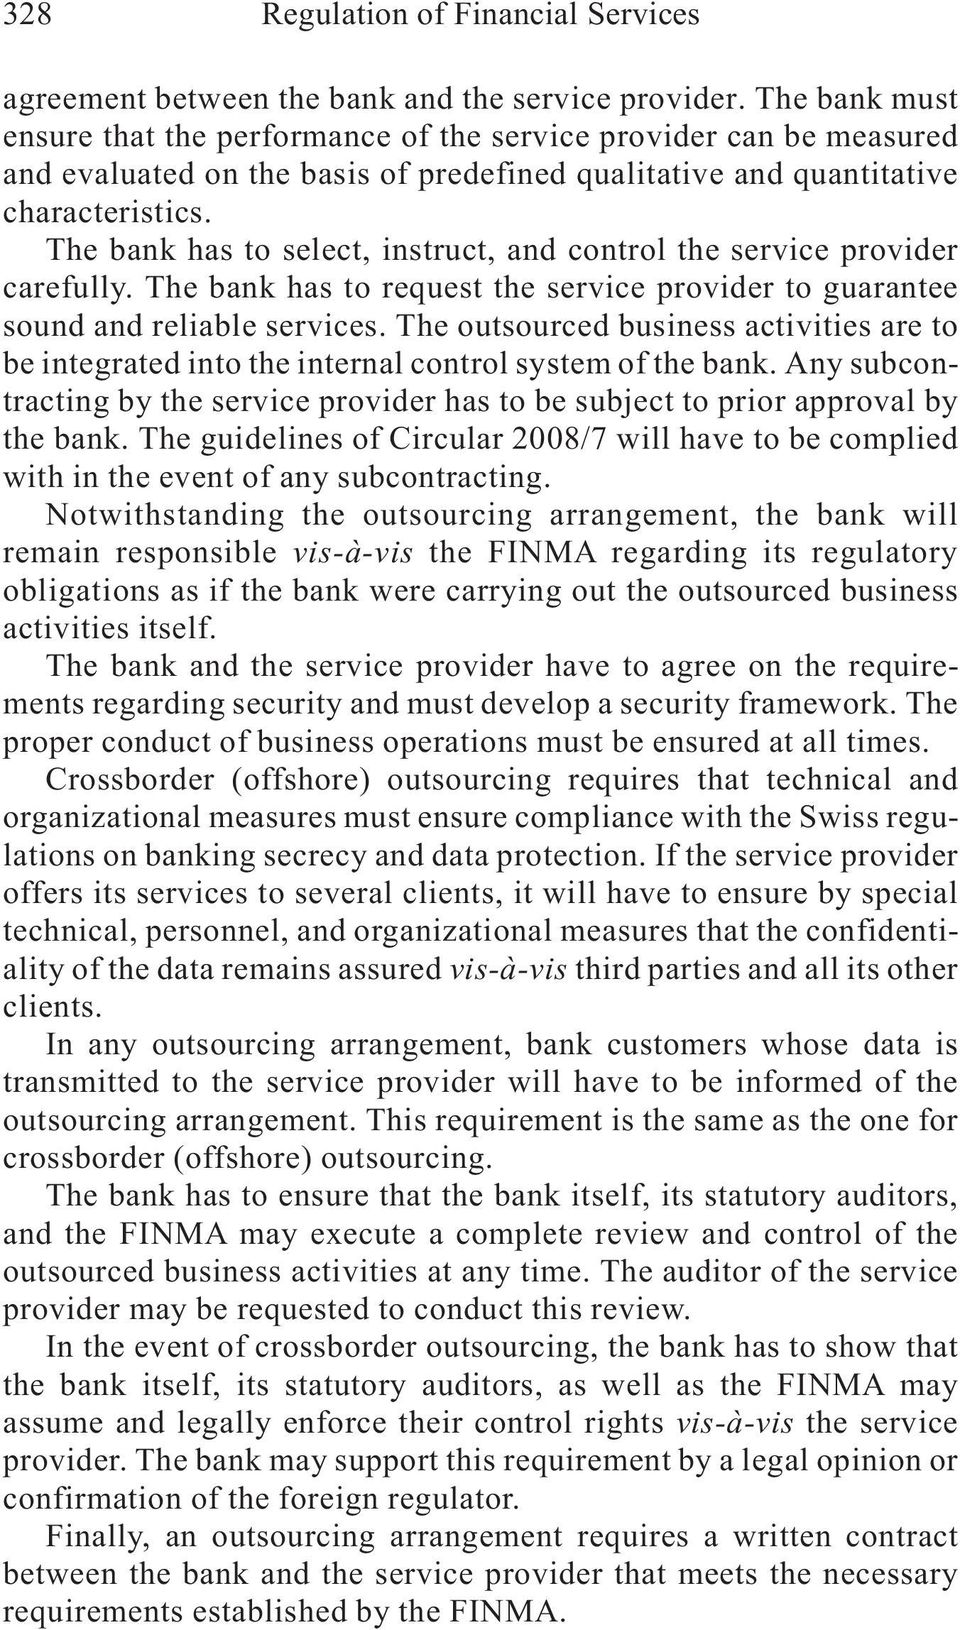 The bank has to select, instruct, and control the service provider carefully. The bank has to request the service provider to guarantee sound and reliable services.